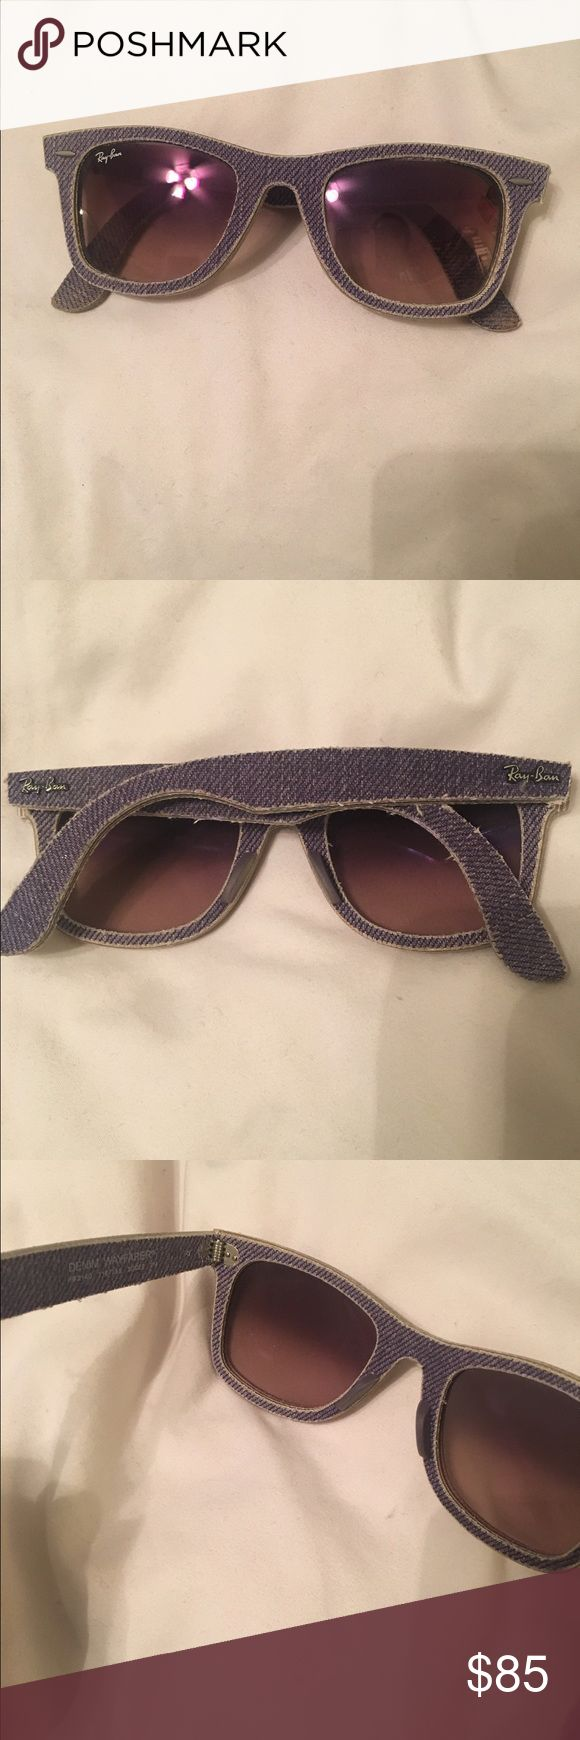 New denim reflective lens wayfarer ray bans Authentic ray ban wayfarers in denim with purple reflective lenses. 100% authentic. New without tags. Makes a great statement piece and so unique! Ray-Ban Accessories Sunglasses